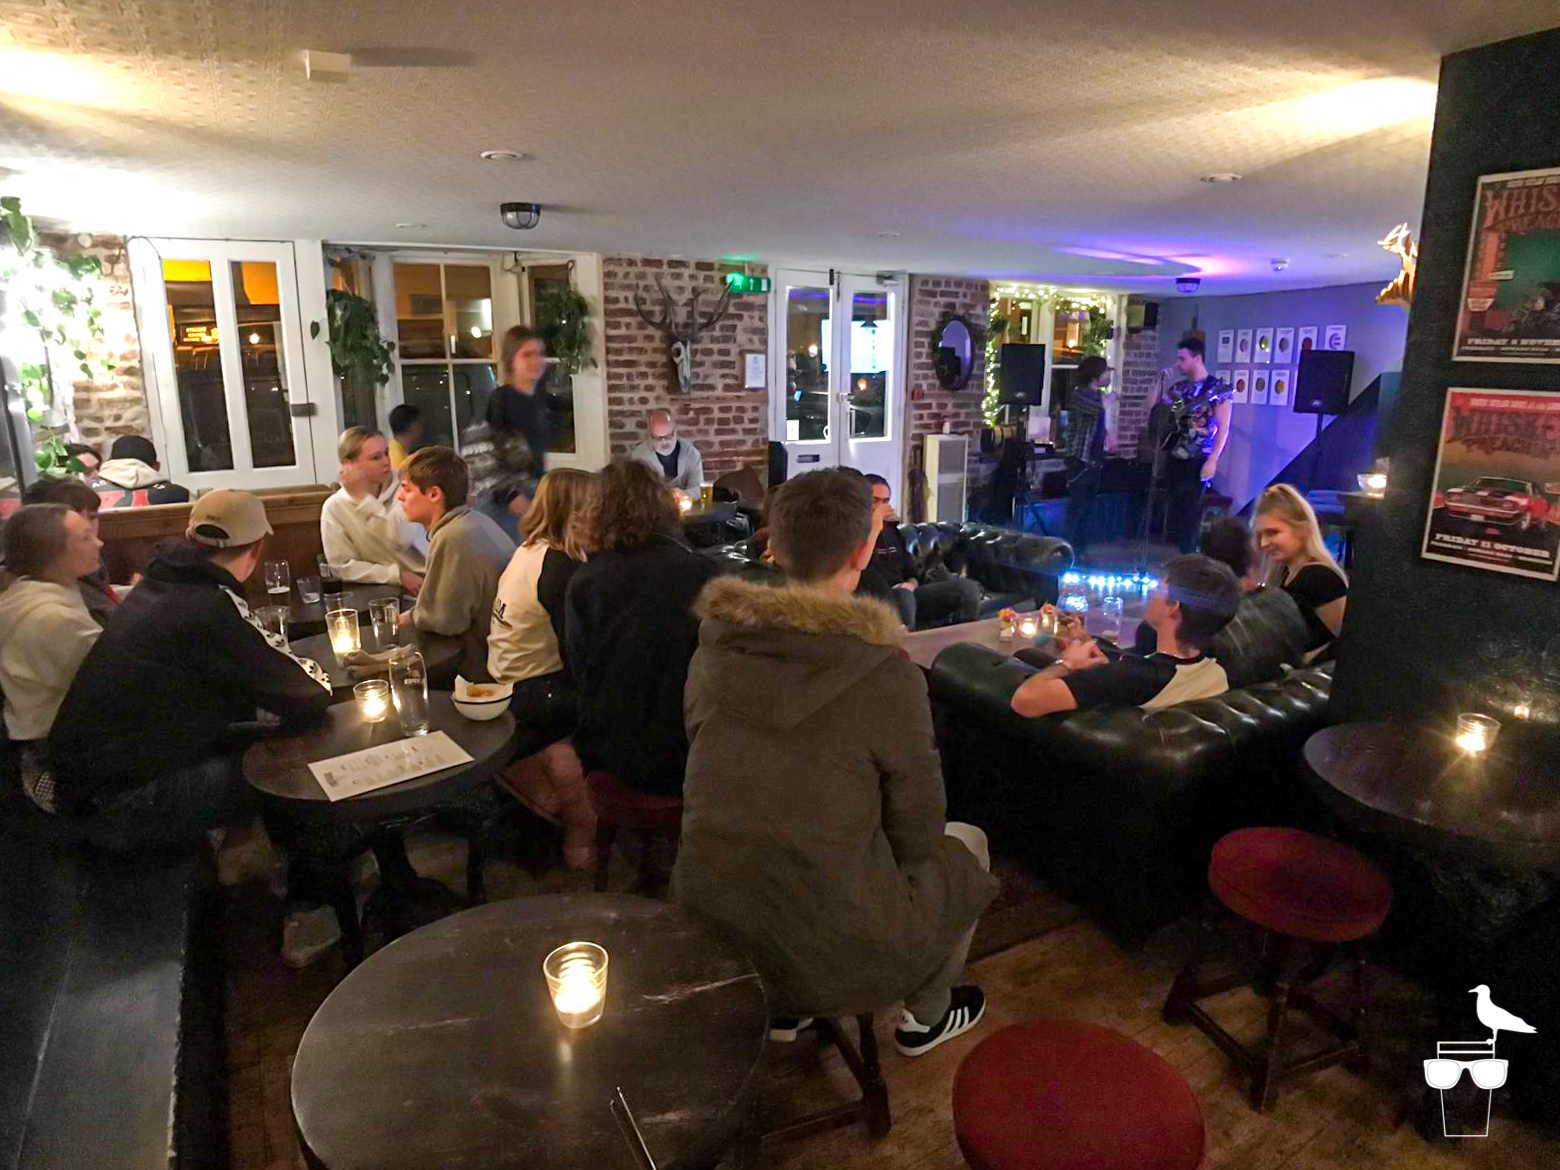 freehaus pub brighton inside busy sofas lots of customers